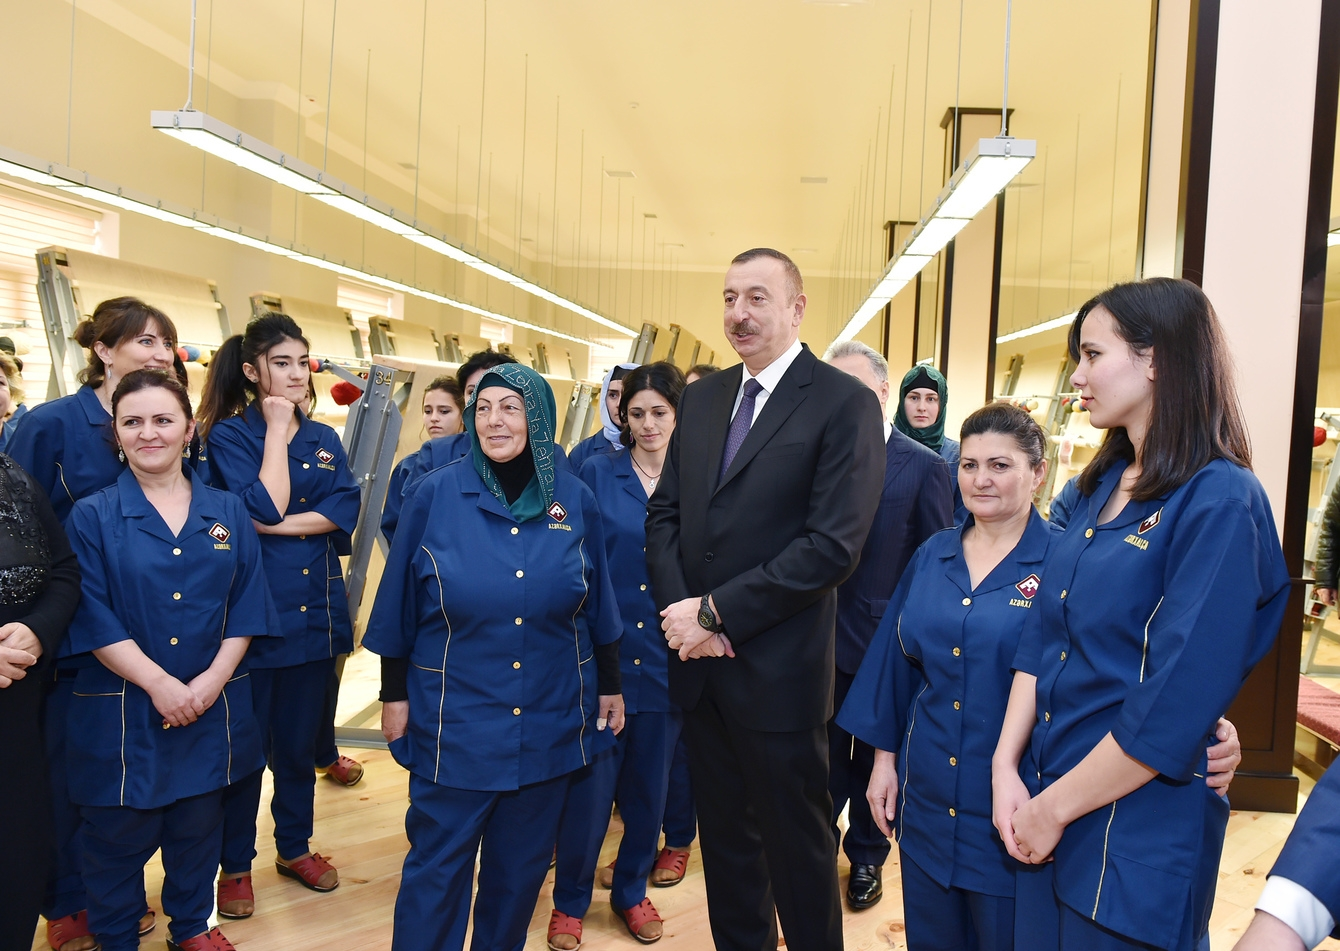 Ilham Aliyev opening a carpet factory in the northern city of Guba in December. (president.az)